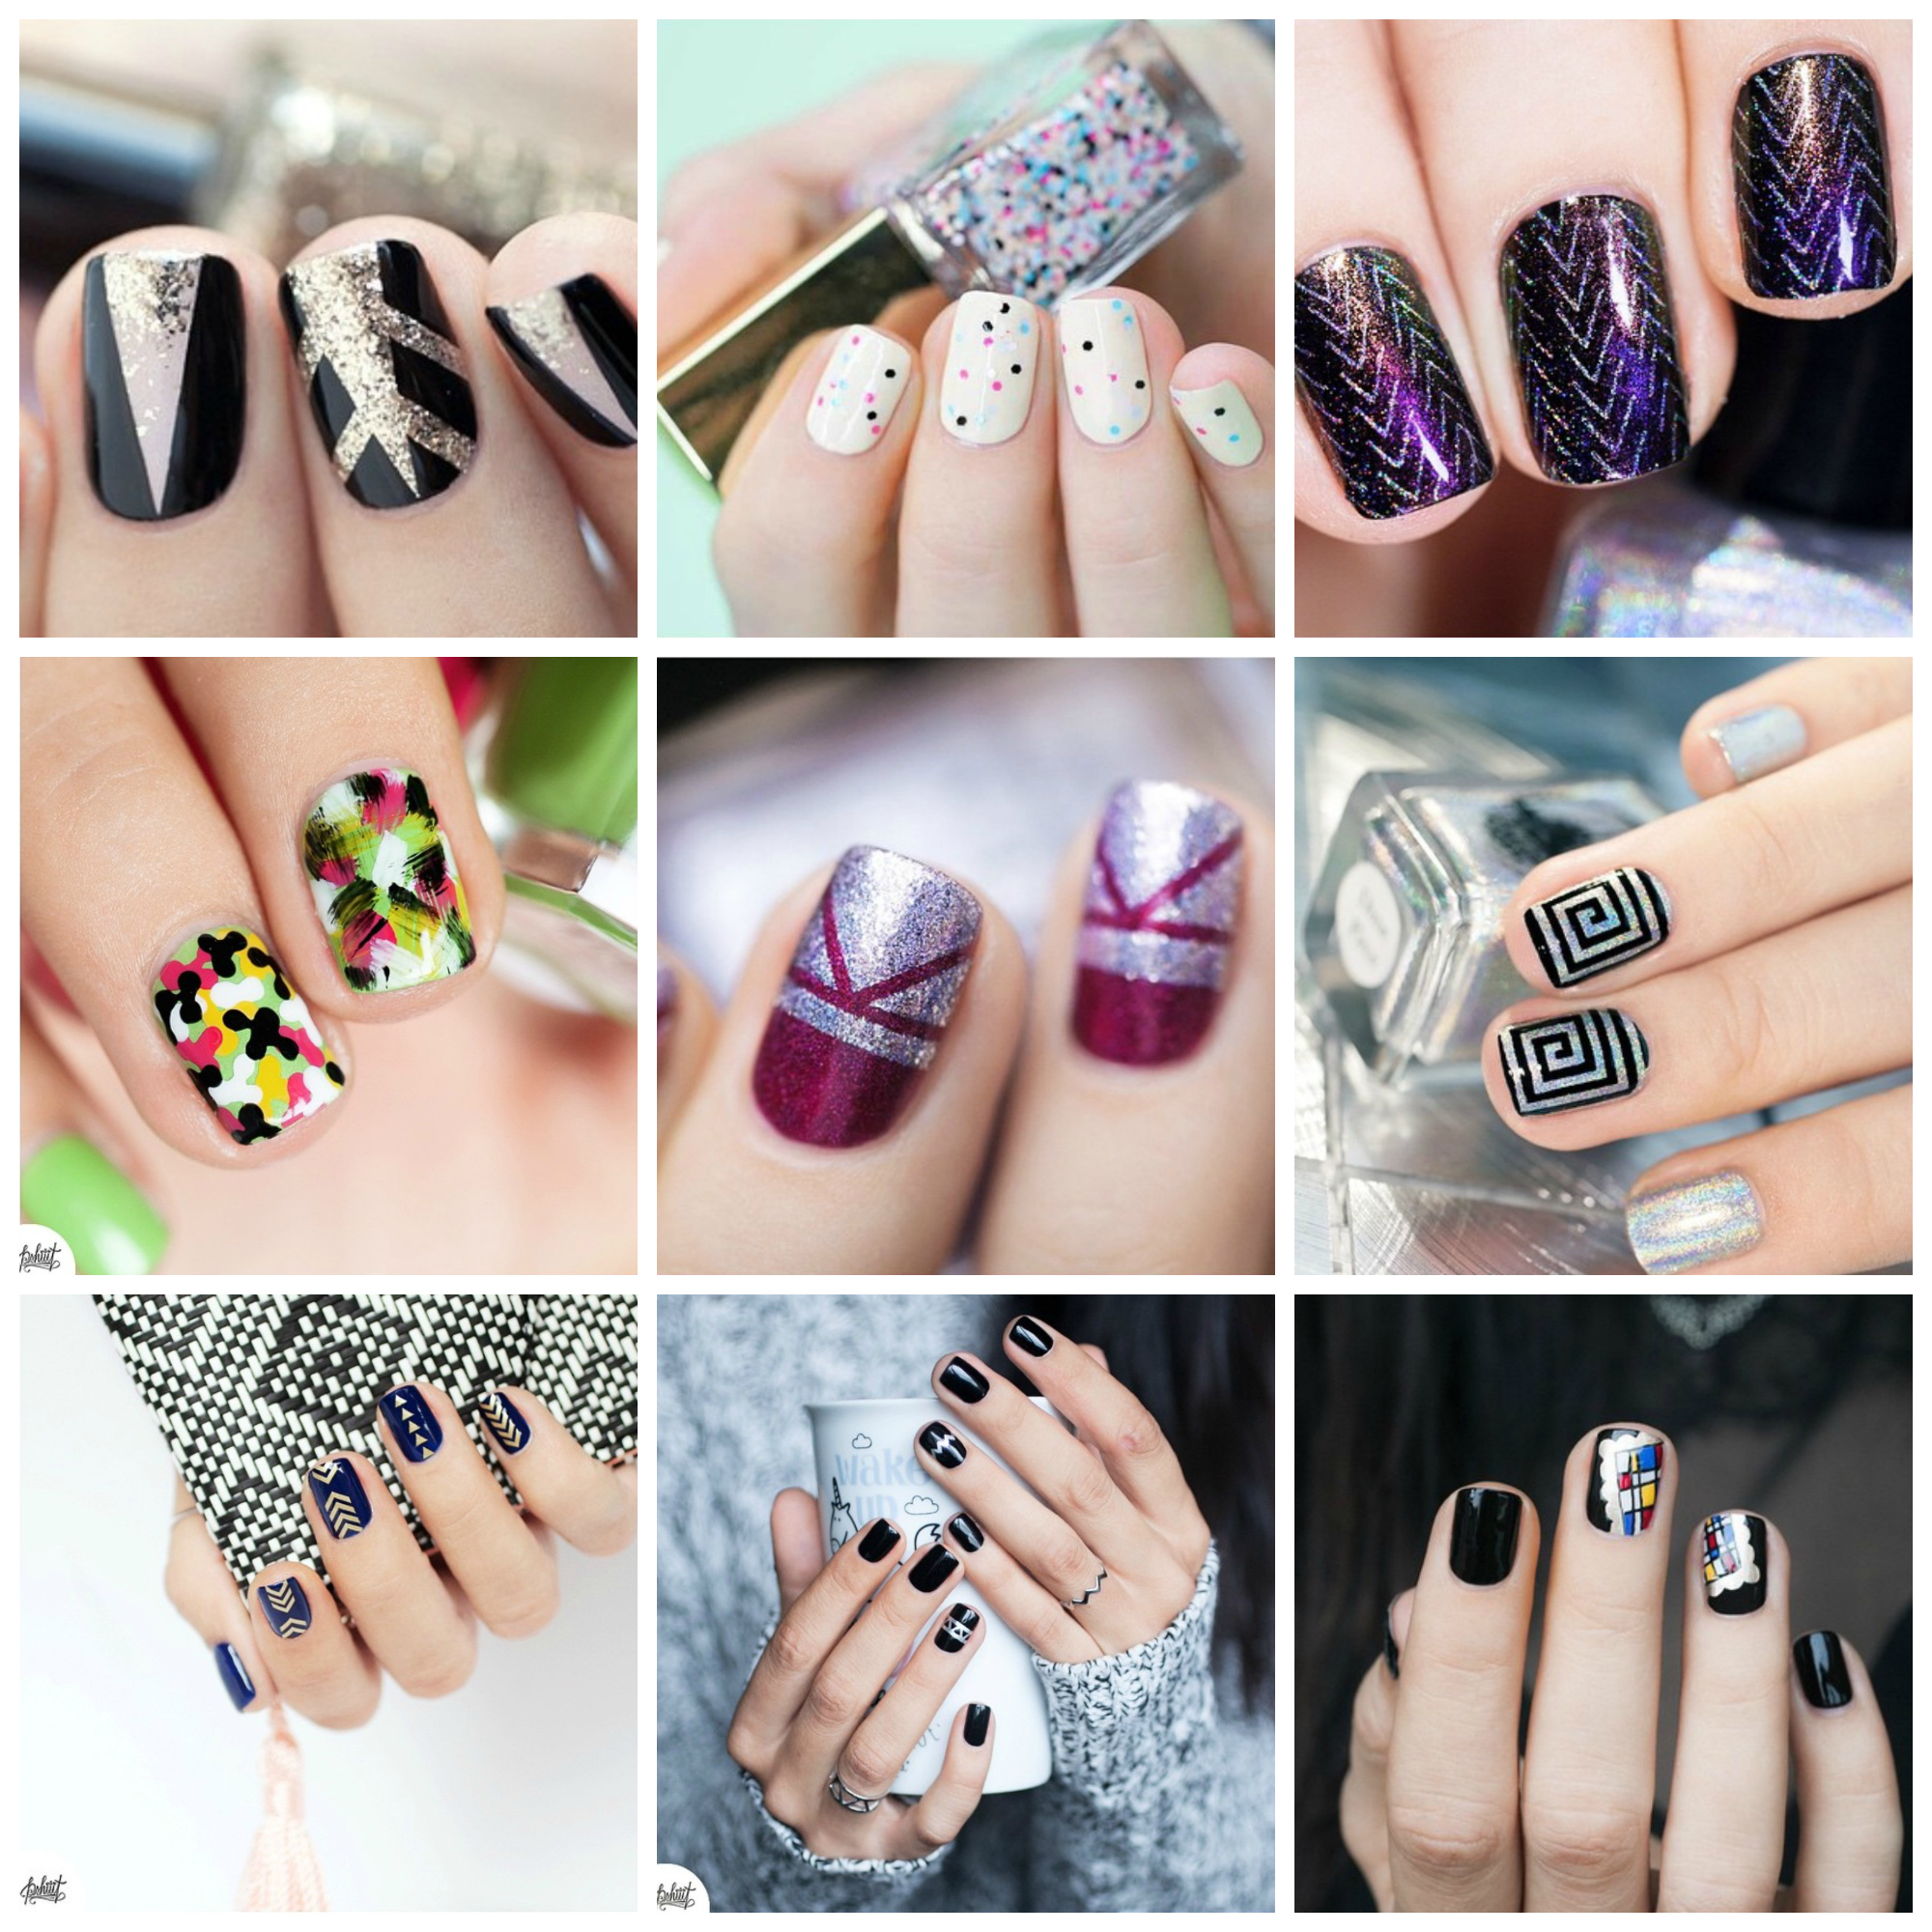 Nail Art Pshiiit Nail Polish Manicure Pedicure OOTD Style Dominiation